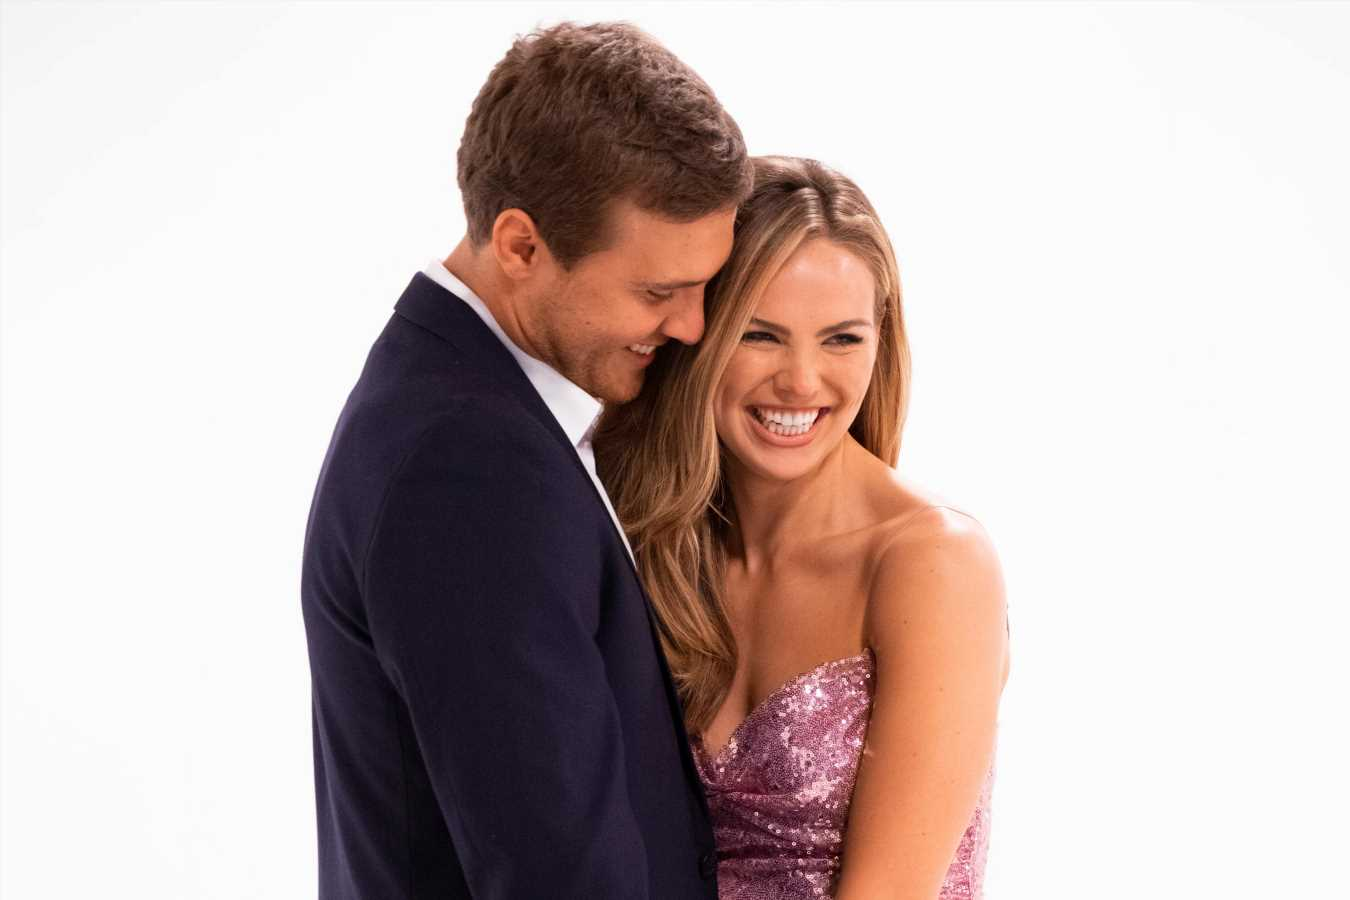 The Bachelorette's Hannah Brown Says She Struggled to Say Goodbye to Peter Weber: 'My Heart Was Broken'